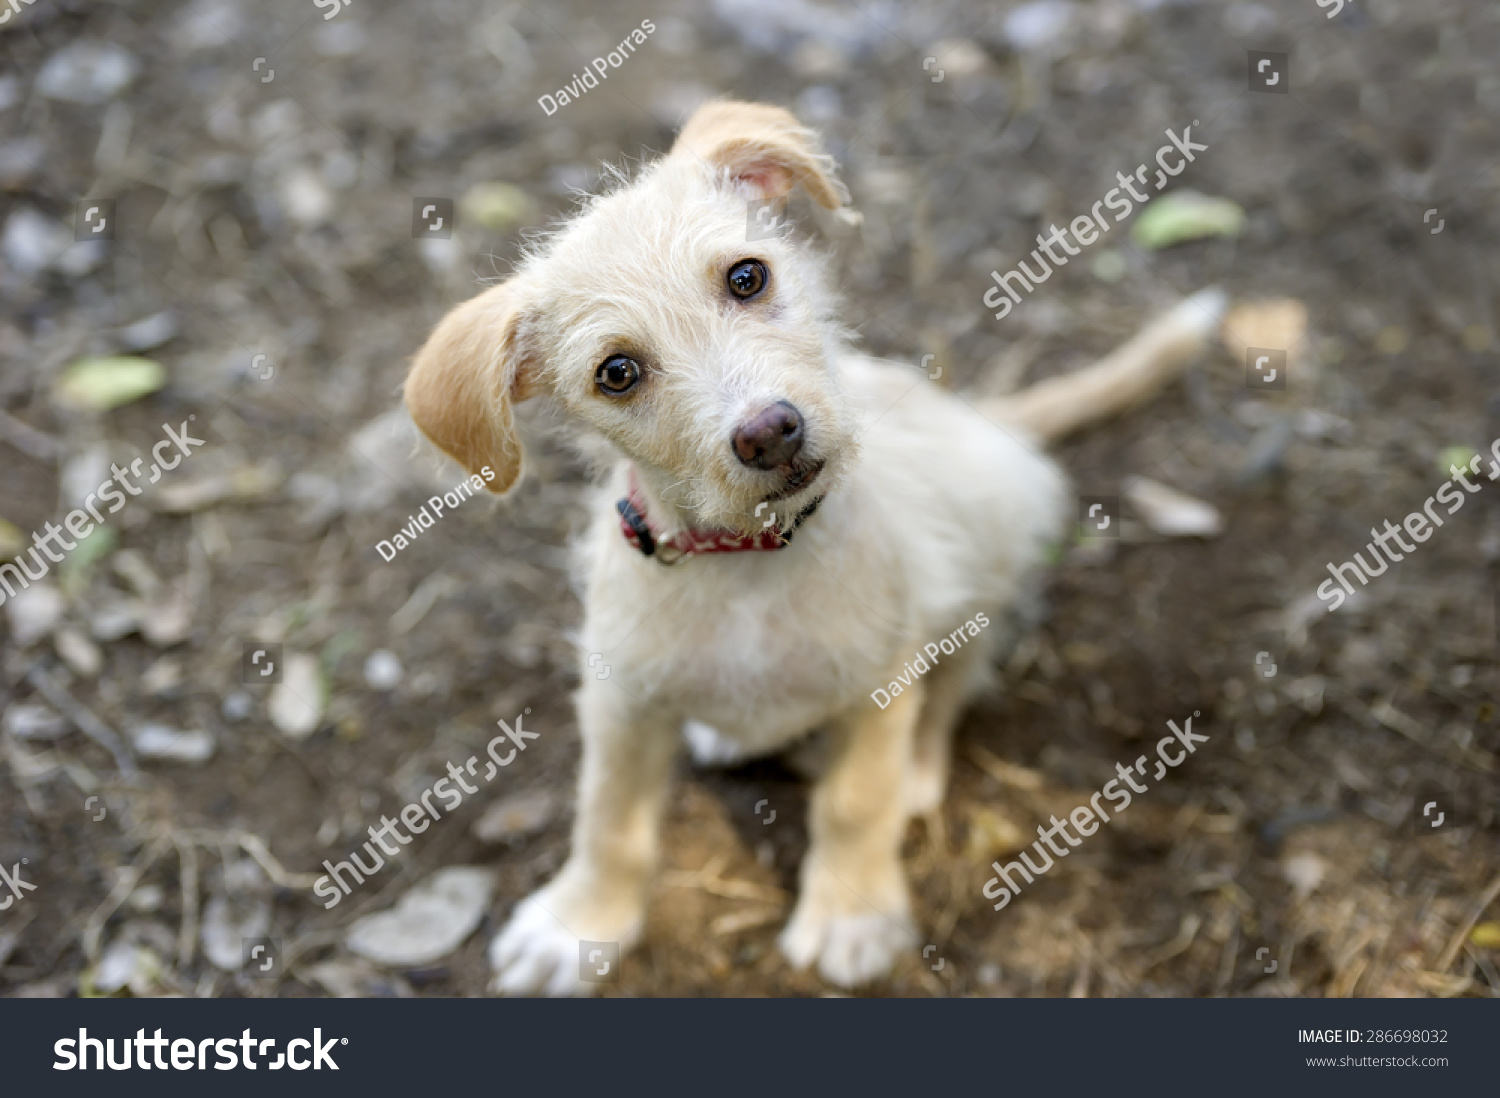 Curious Dog Looking Adorable Face Cute Stock